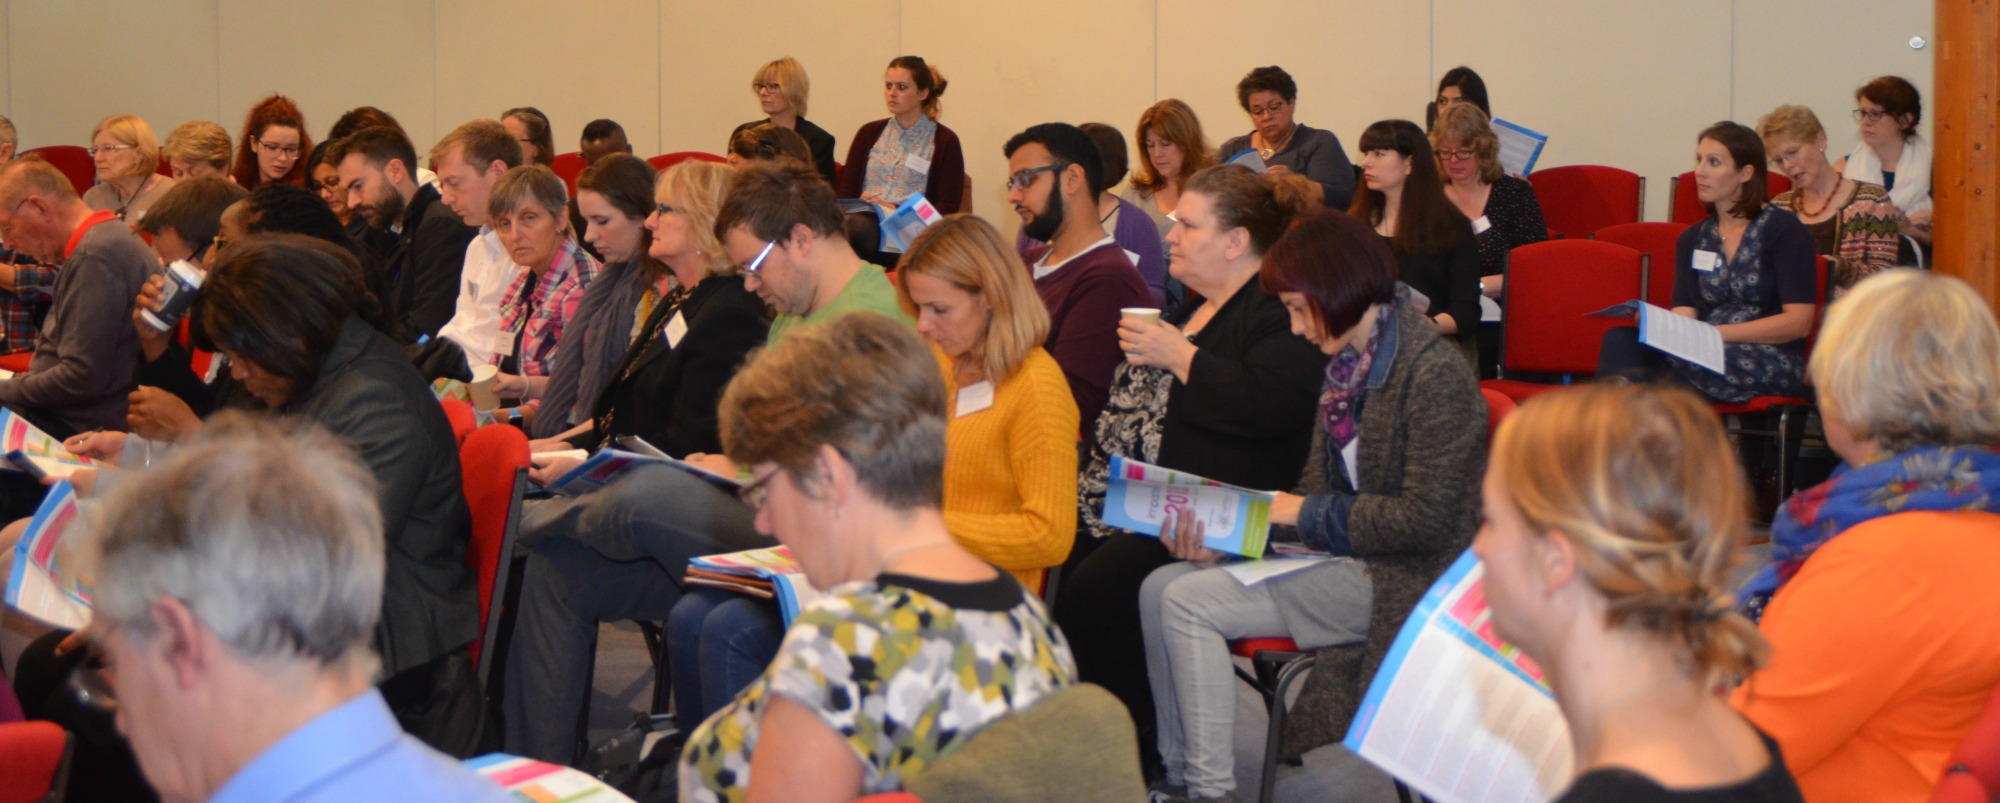 Photo of attendees at Impact Aloud 2015